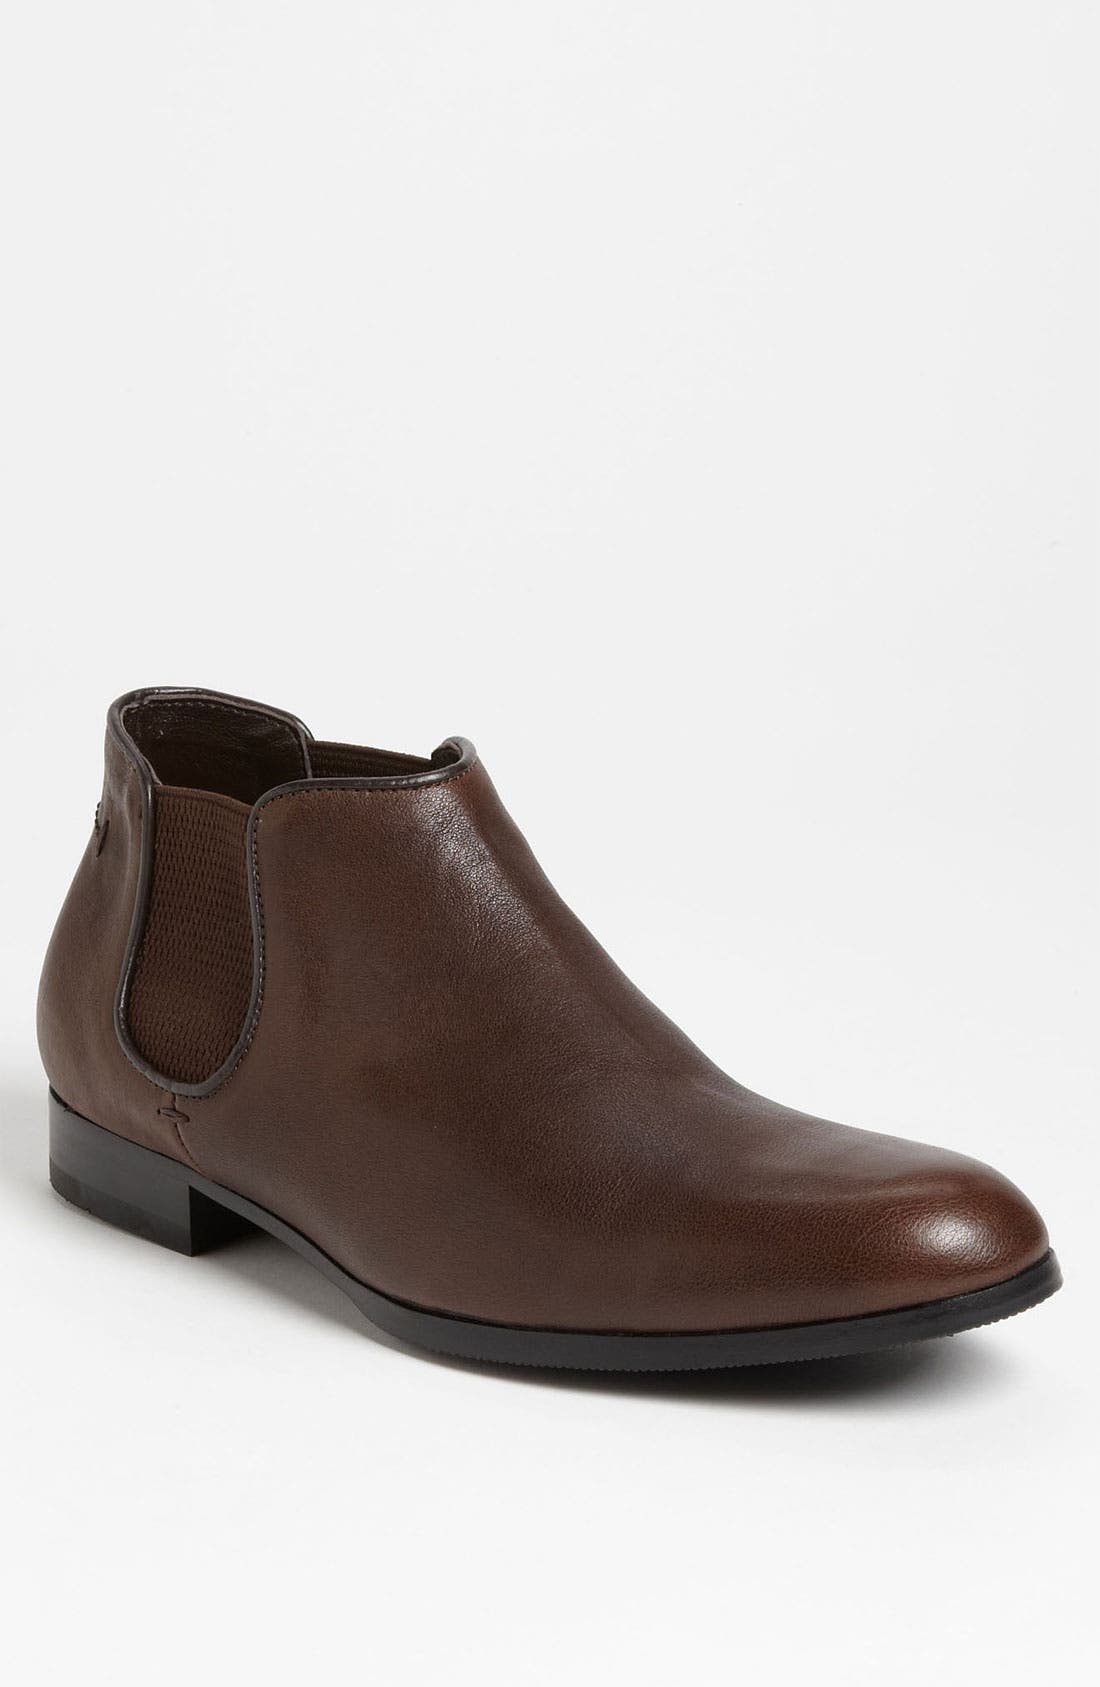 Alternate Image 1 Selected - Maison Forte 'Otto' Boot